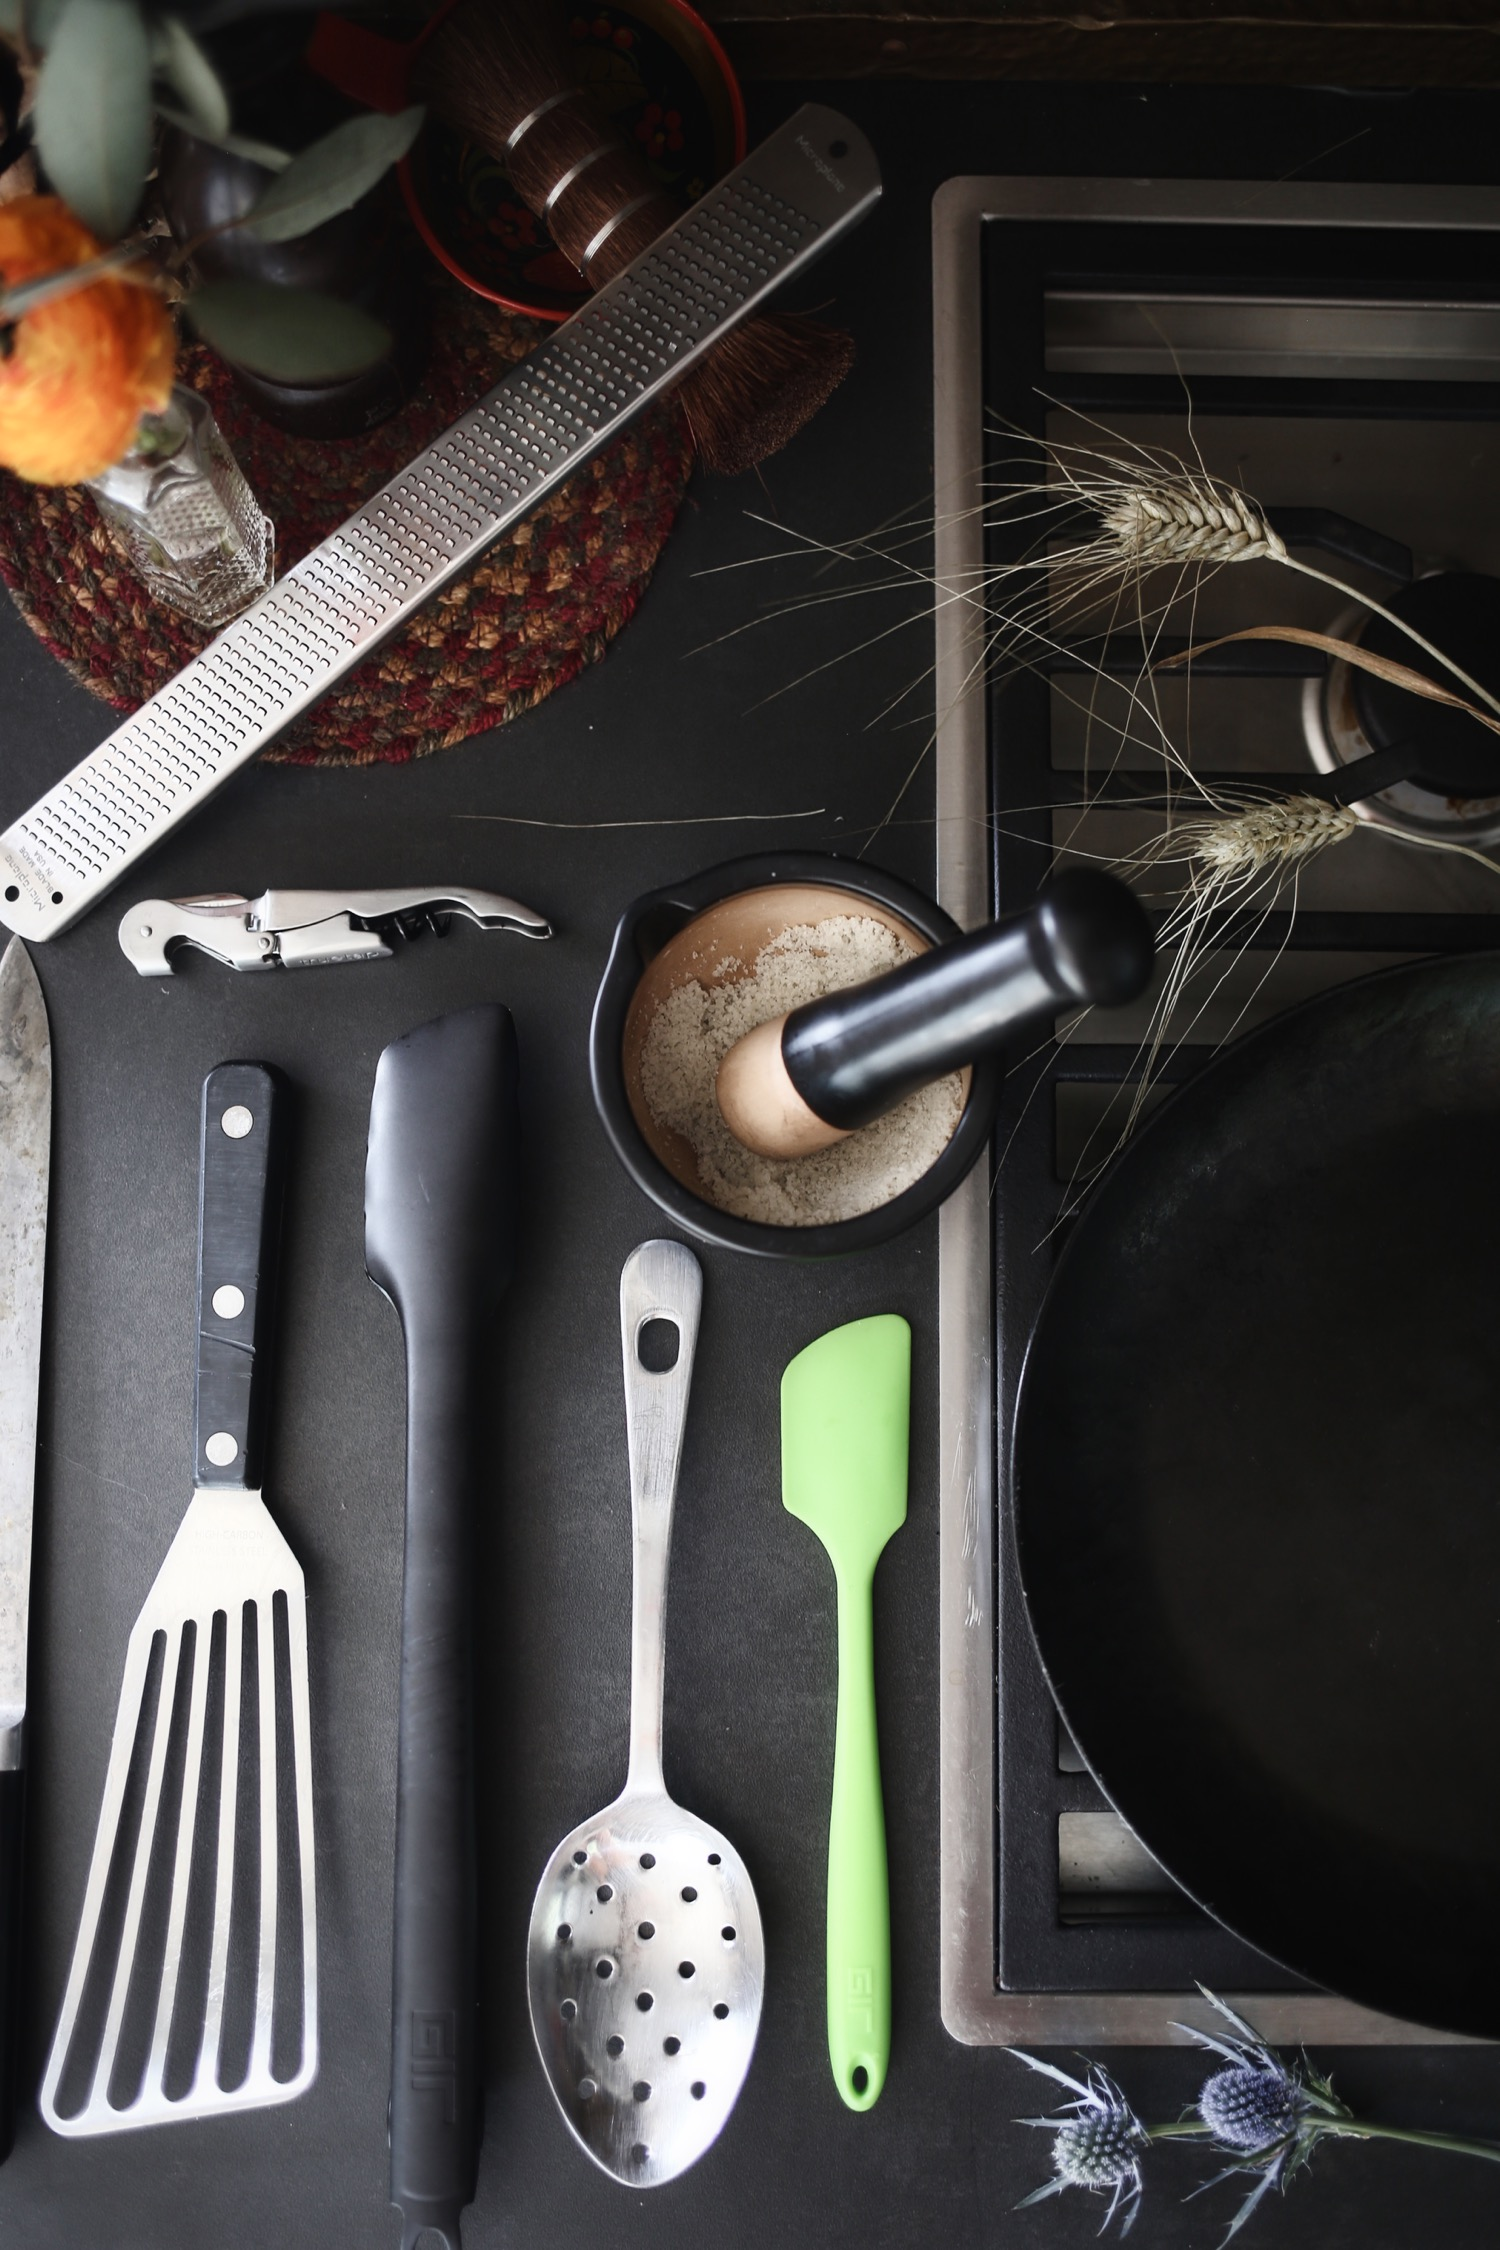 kitchen tools & Miscellaneous Essentials - When it comes to price, quality, and aesthetics, nothing tops GIR tools. Don't even consider another brand if GIR makes what you're looking for.Our faves: Ultimate Spatula // Mini Spatula // Ladle // Ultimate Spoonula // Slotted Spoon // Tongs (not yet released, but I've got some and they're AMAZING!)————————————————————————————--All of these items should handle 90% of your cooking, but here are a few more things that can move the needle:Peltex Spatula: absolute best style of spatula for flippingMicroplane: an eternal tool essential for zesting citrus (great ad to salads) and grating cheeses or gingerMortar and Pestle: if you're not grinding your own salt and spices, you need to start right now. It's the single biggest thing you can do to improve the flavor of everything you make.